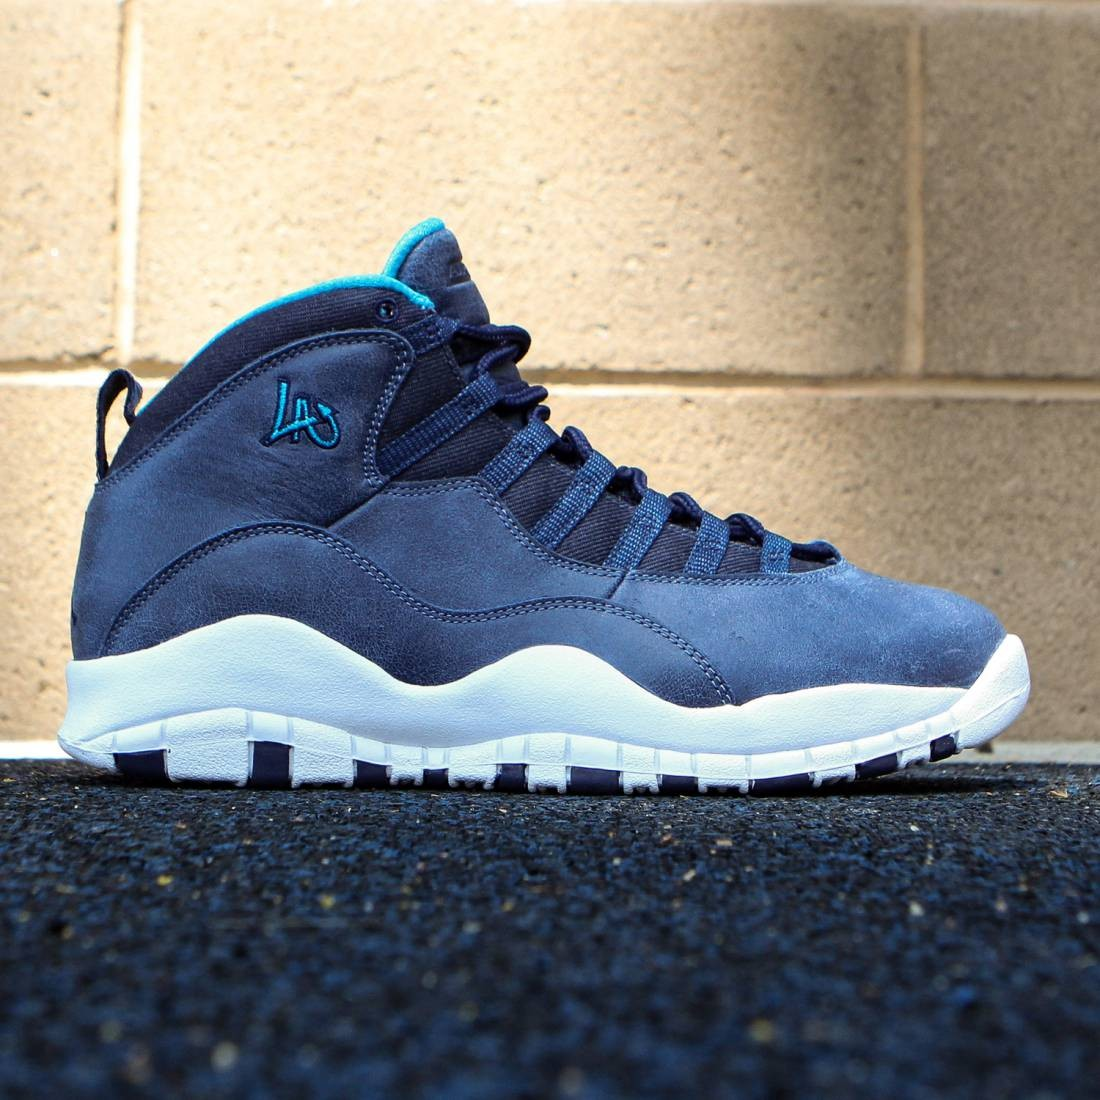 san francisco 45b53 41f12 Jordan Men Air Jordan Retro 10 City Pack LA (ocean fog / ocean fog / blue  lagoon / midnight navy)